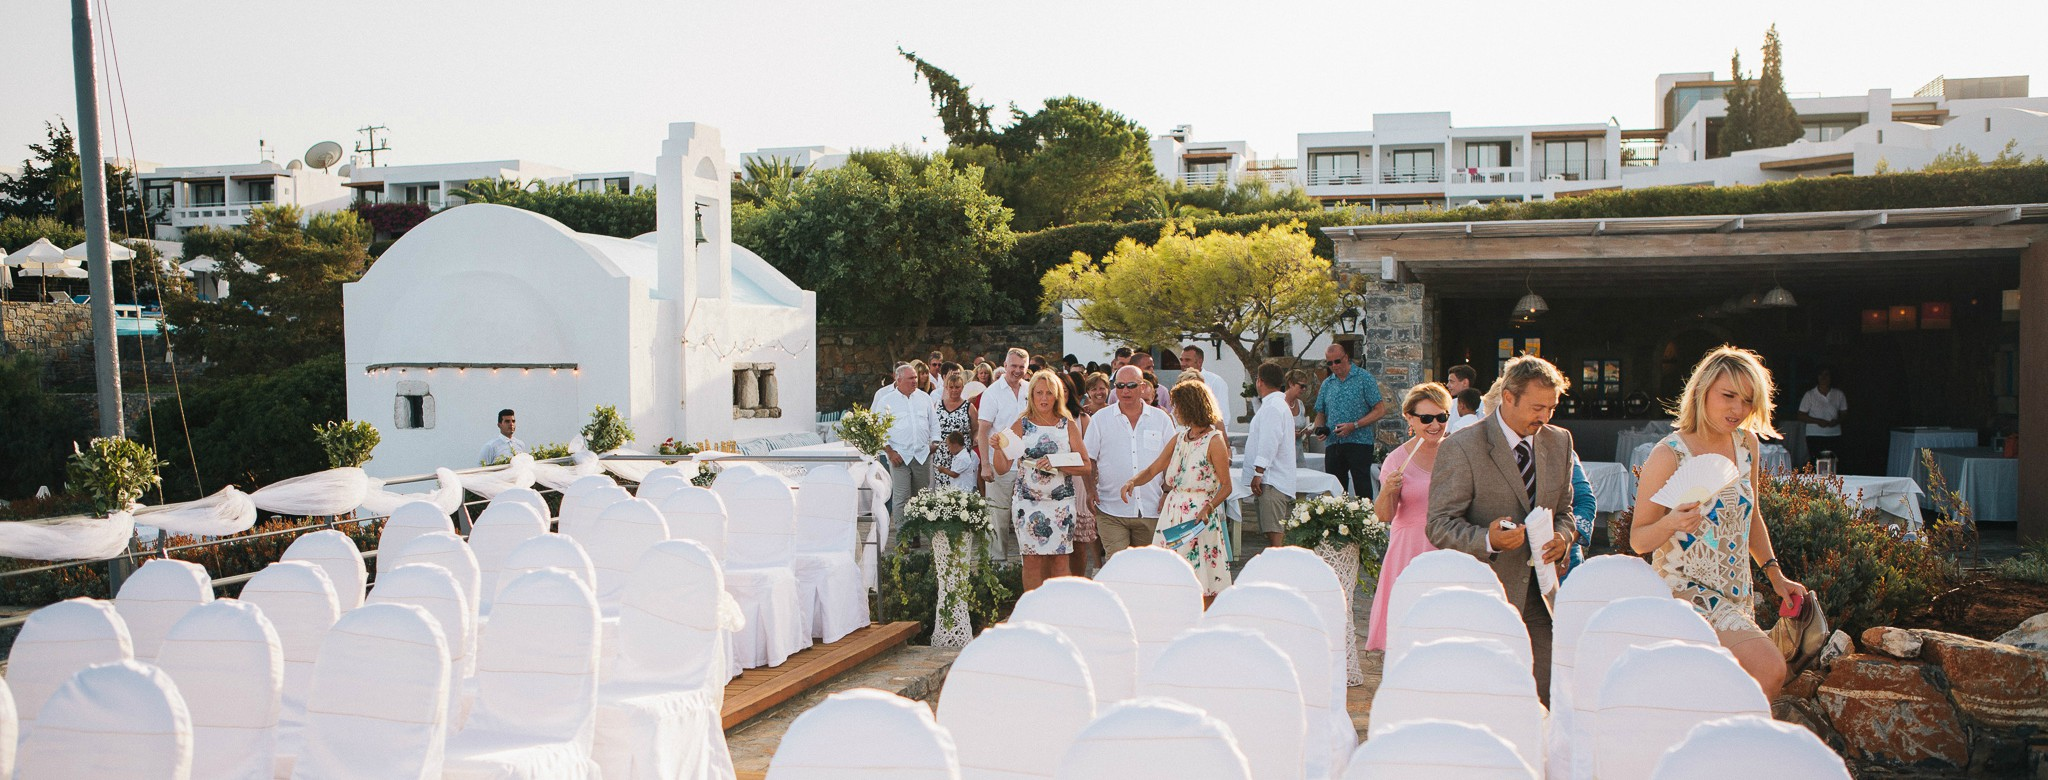 KAFENION TERRACE WEDDING CEREMONY 2.jpg